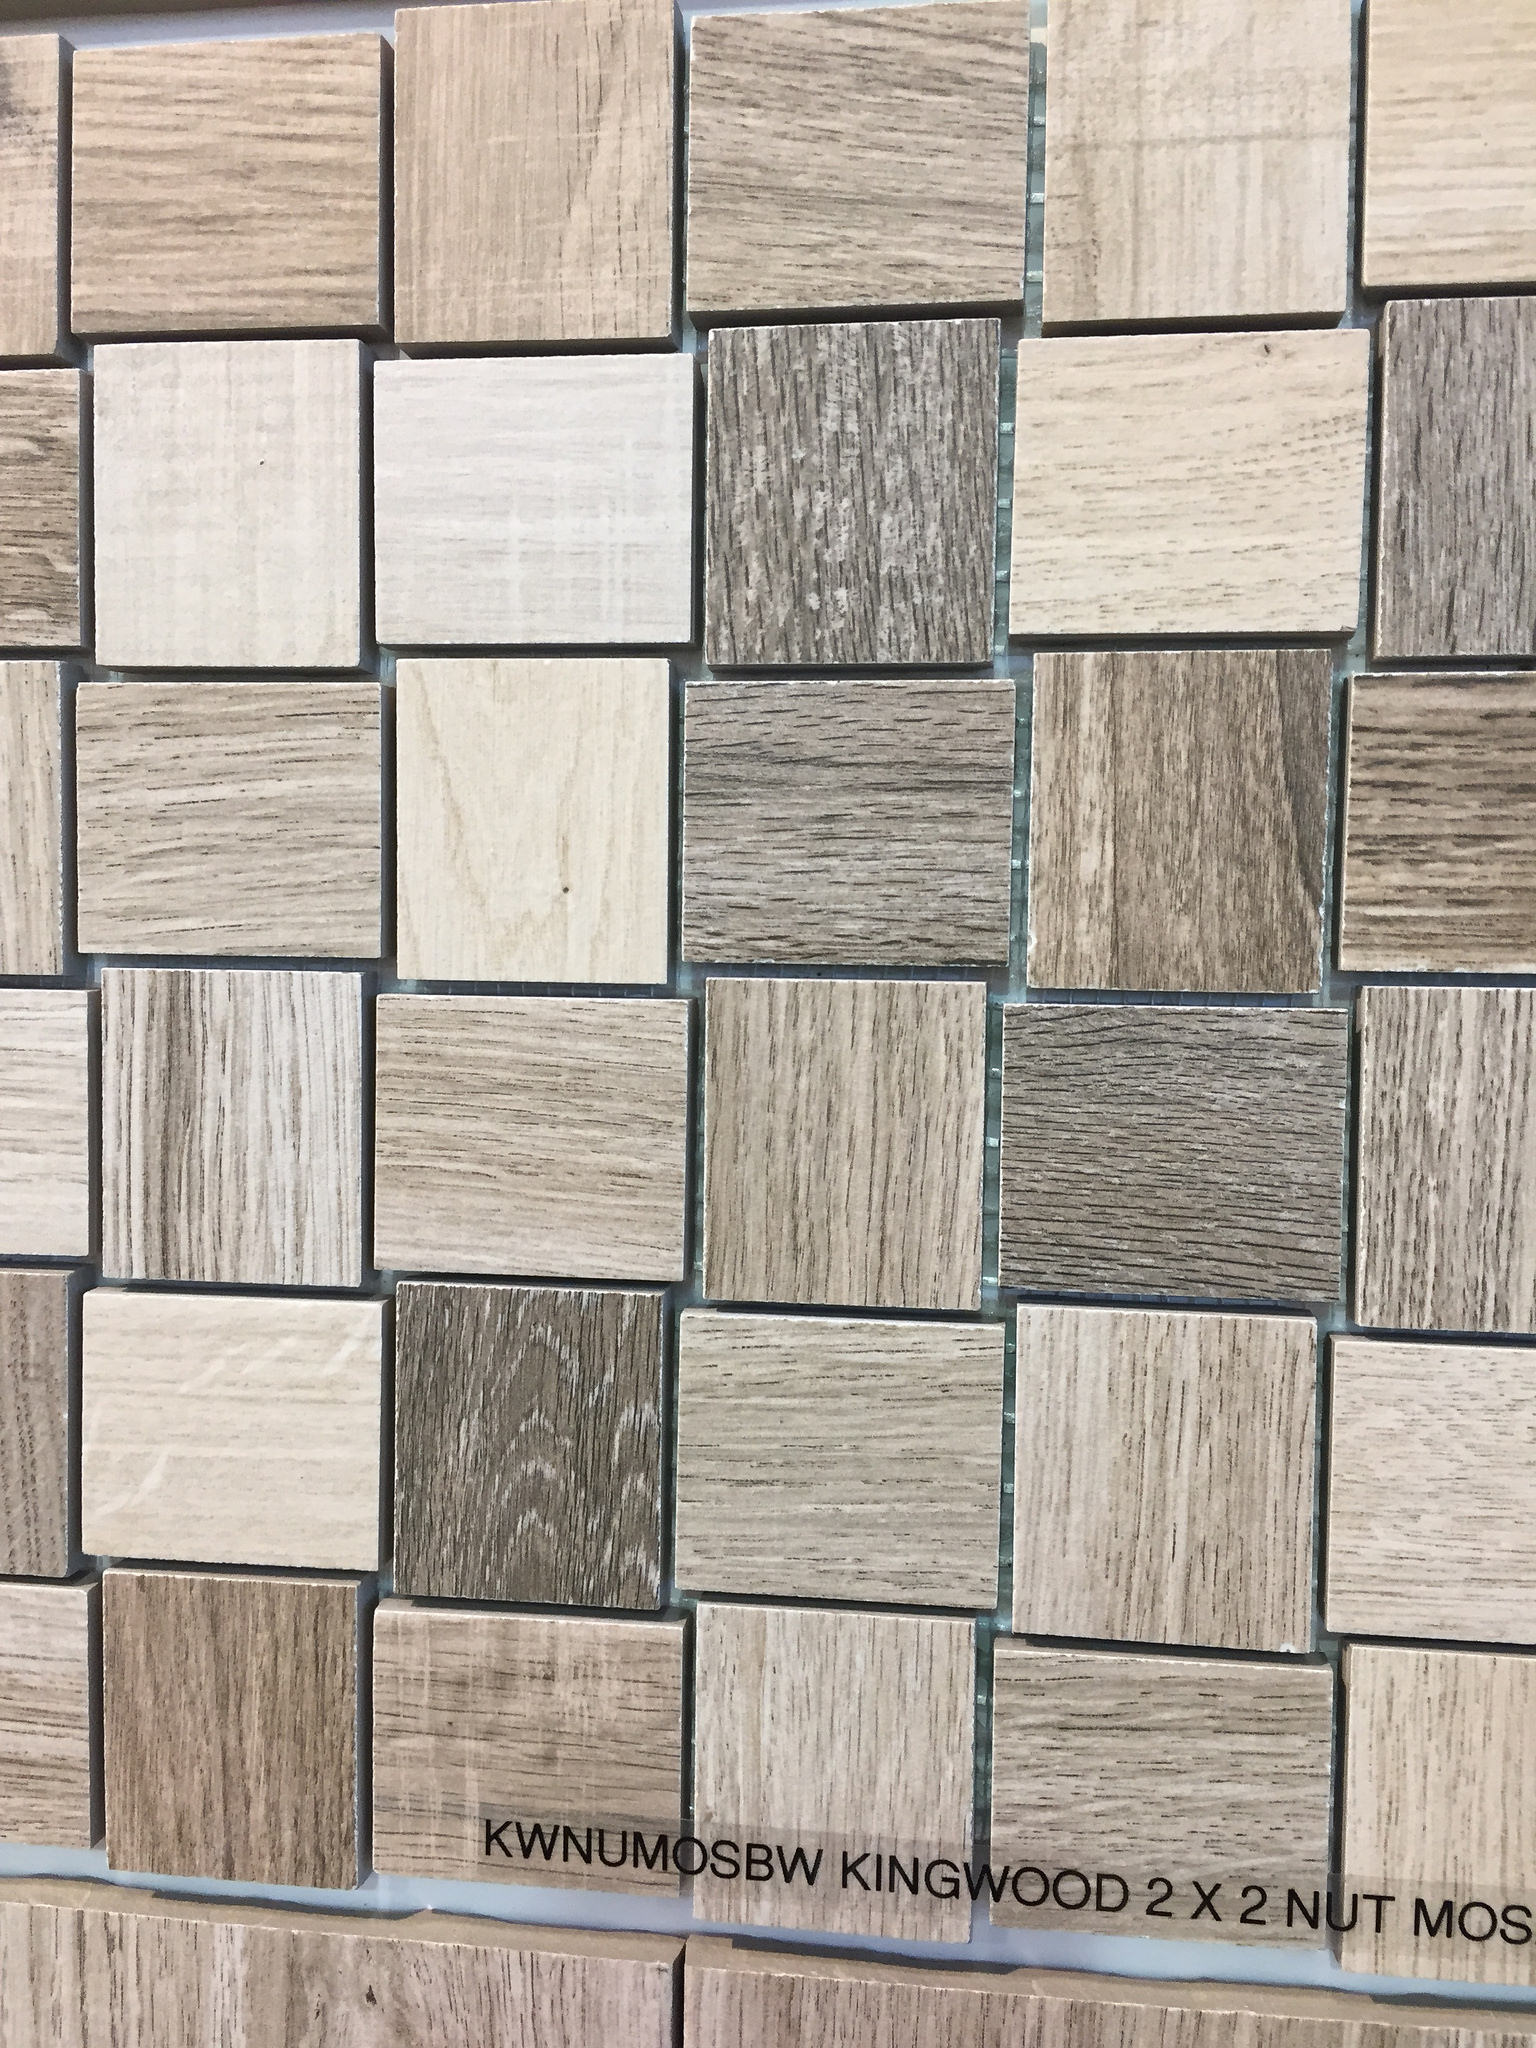 Tile Trends In Bathroom Furniture For 2017: Tile Trends From The Showrooms In Calgary